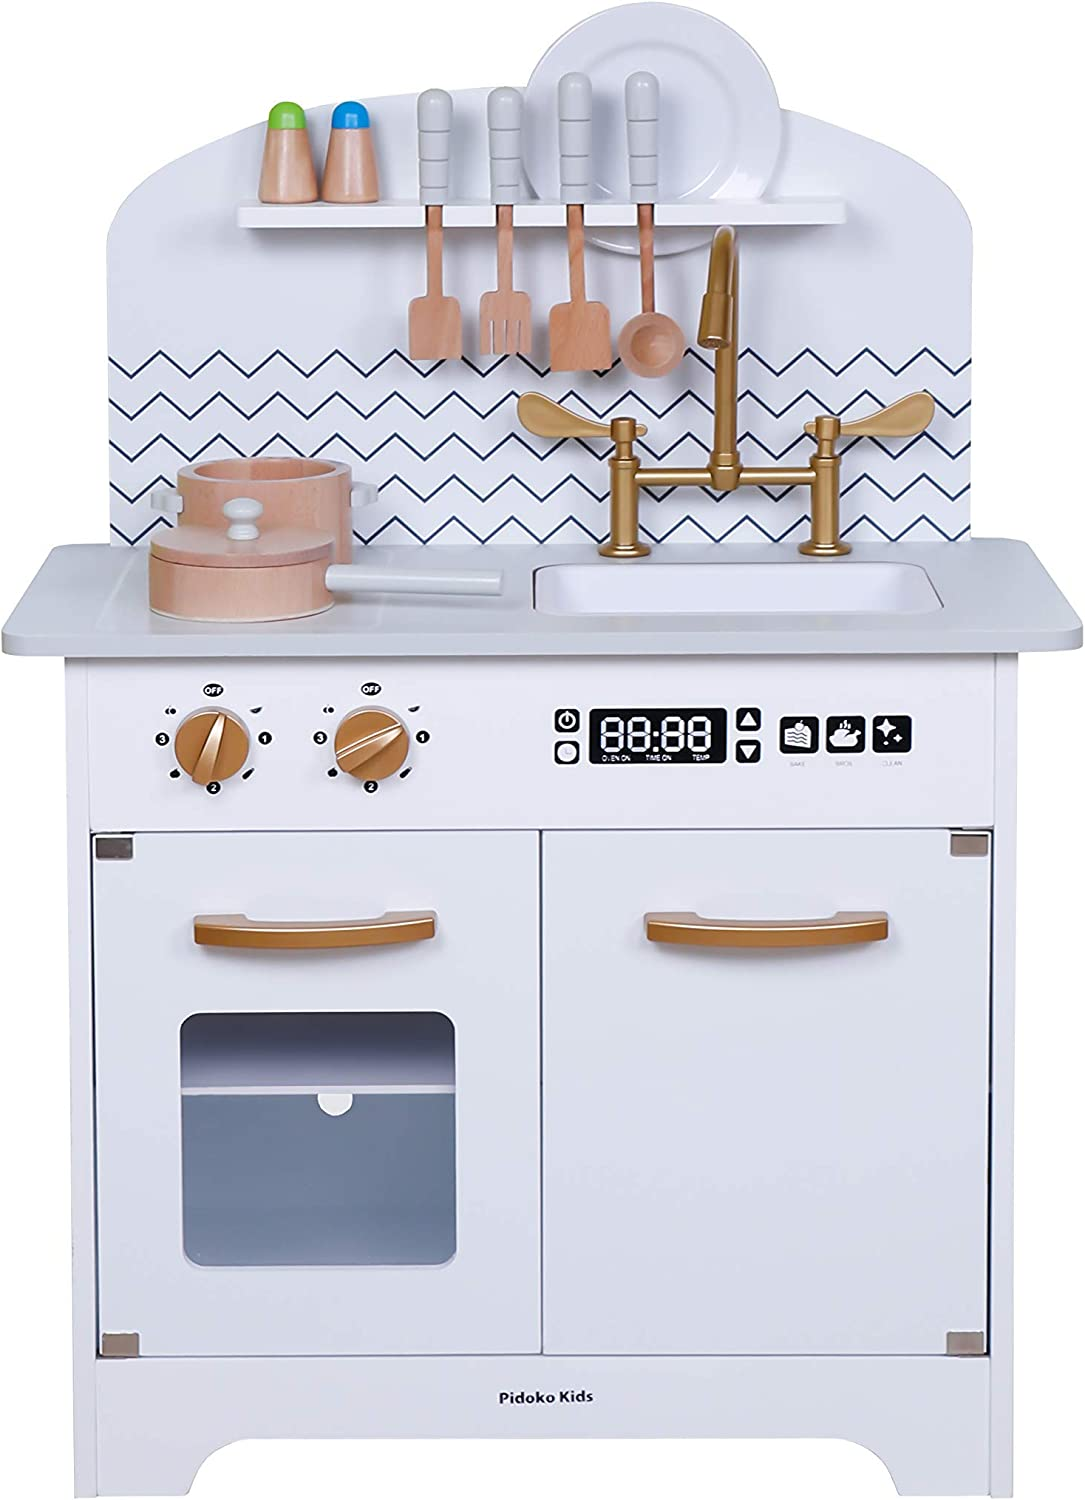 Amazon Com Pidoko Kids Wooden Toy Kitchen Grey Gray With Gold Includes Accessories Toys Games